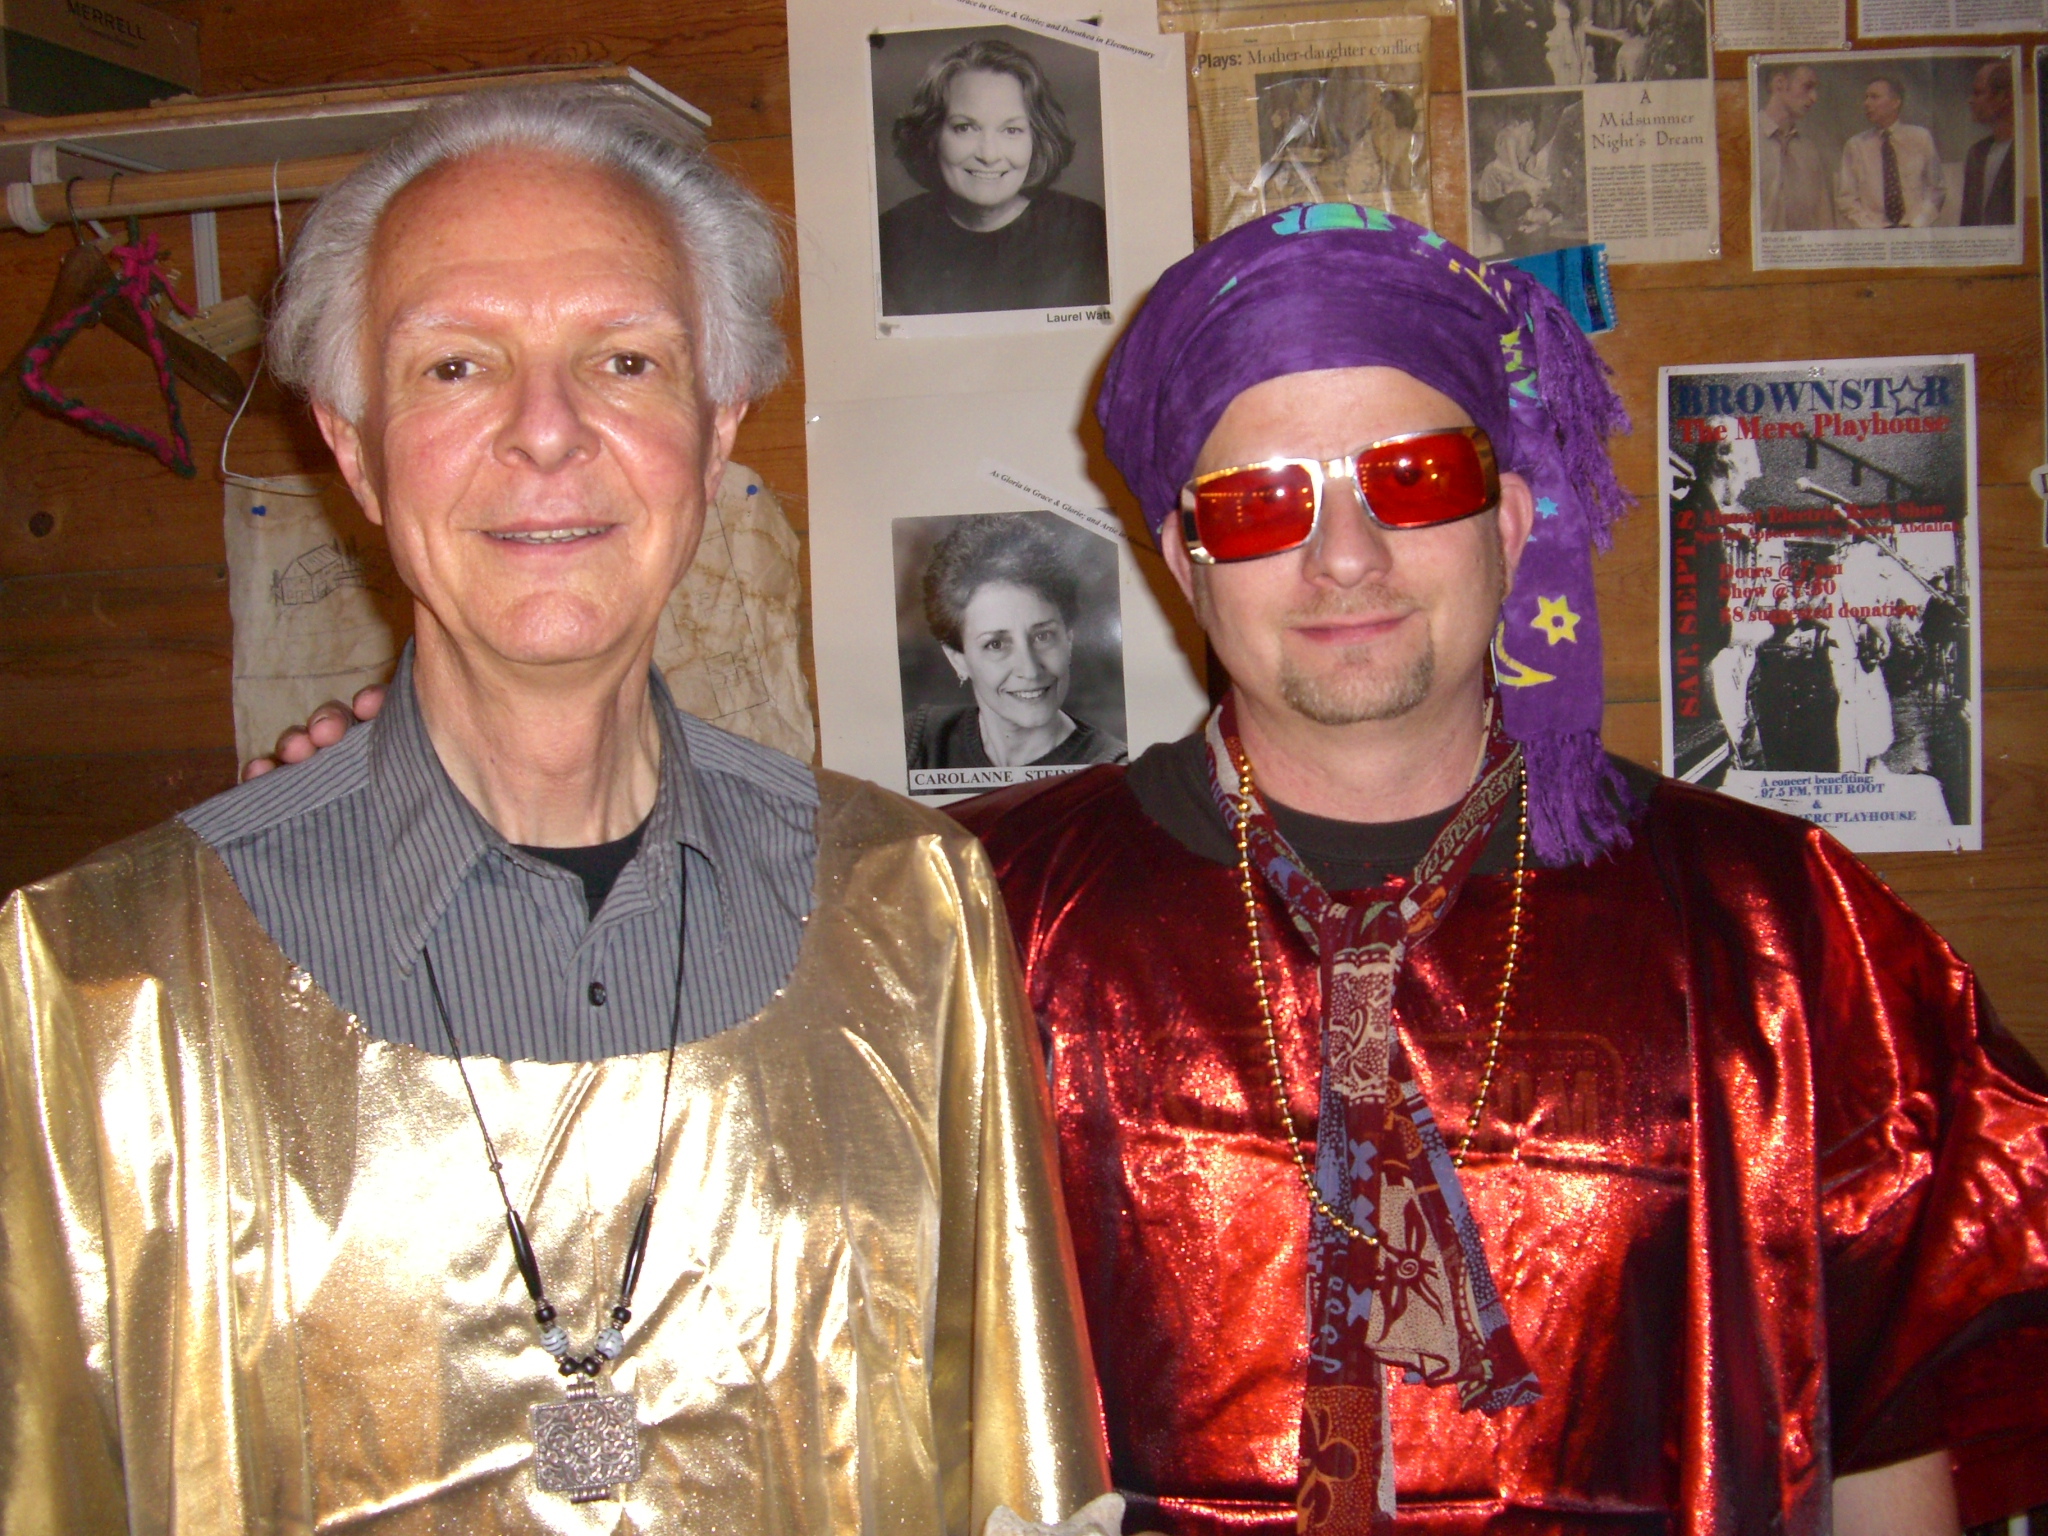 Tom Baker and Stuart Dempster - ready for lift-off in the SRTB (Sun Ra Tribute Band).